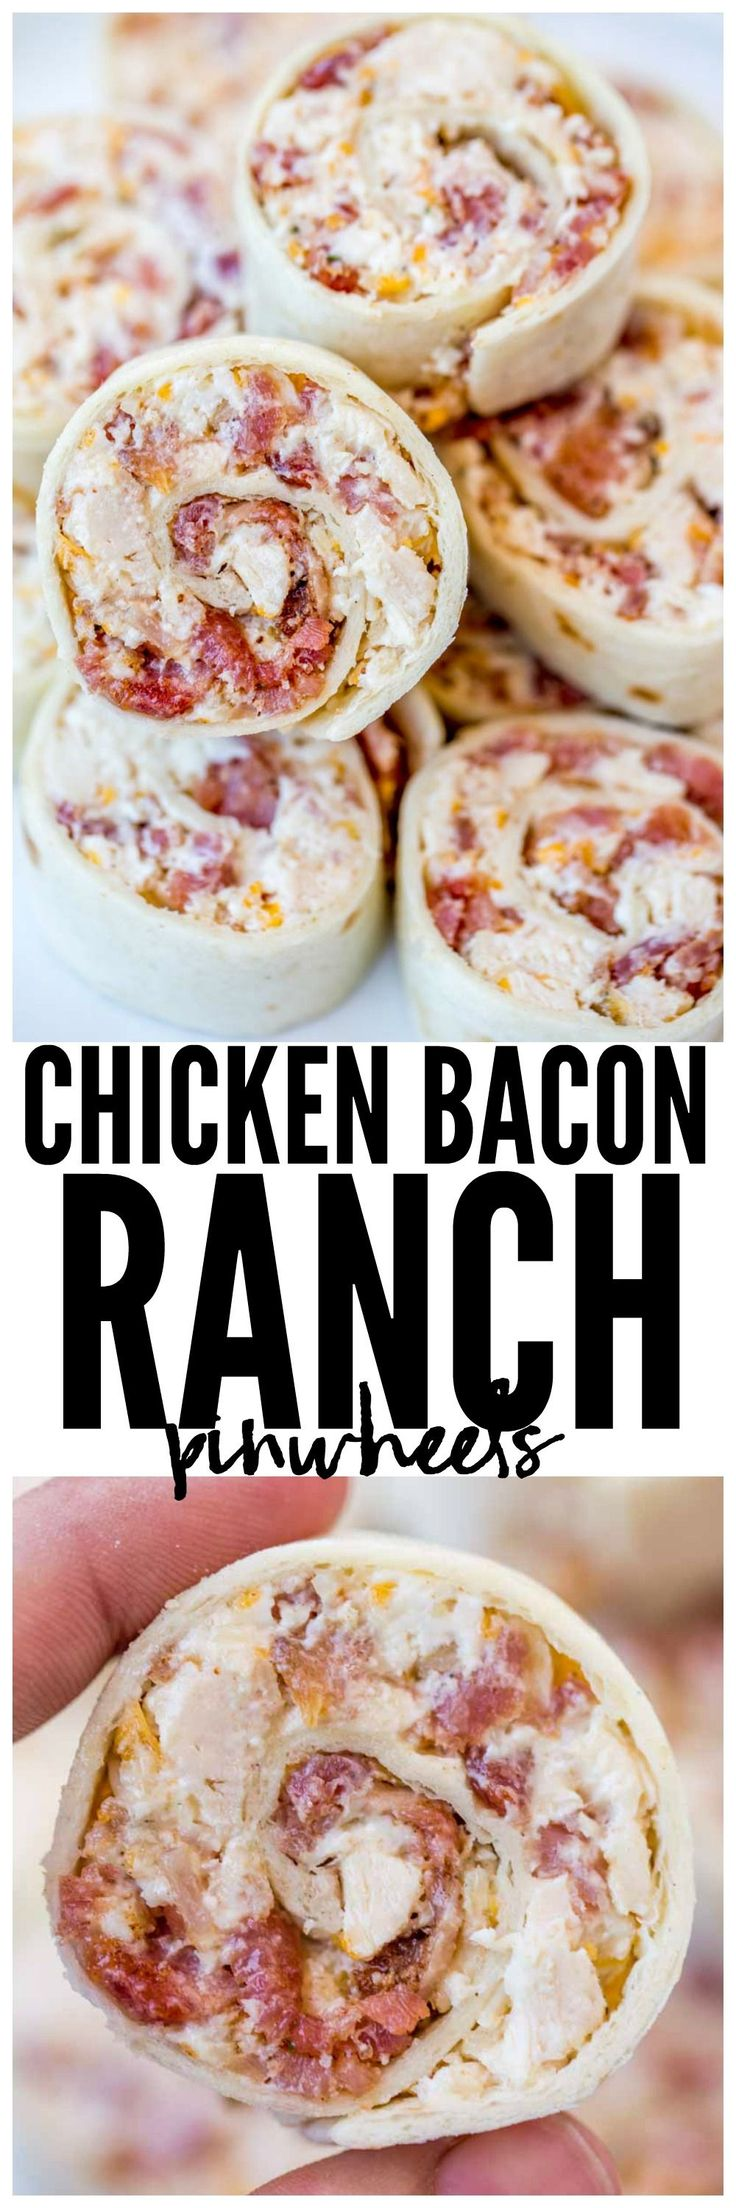 Chicken Bacon Ranch Pinwheels are and easy wrap your party guests will love with chicken, bacon, cheese and ranch seasoning. They're delicious hot and cold! (Ranch Chicken Thighs)